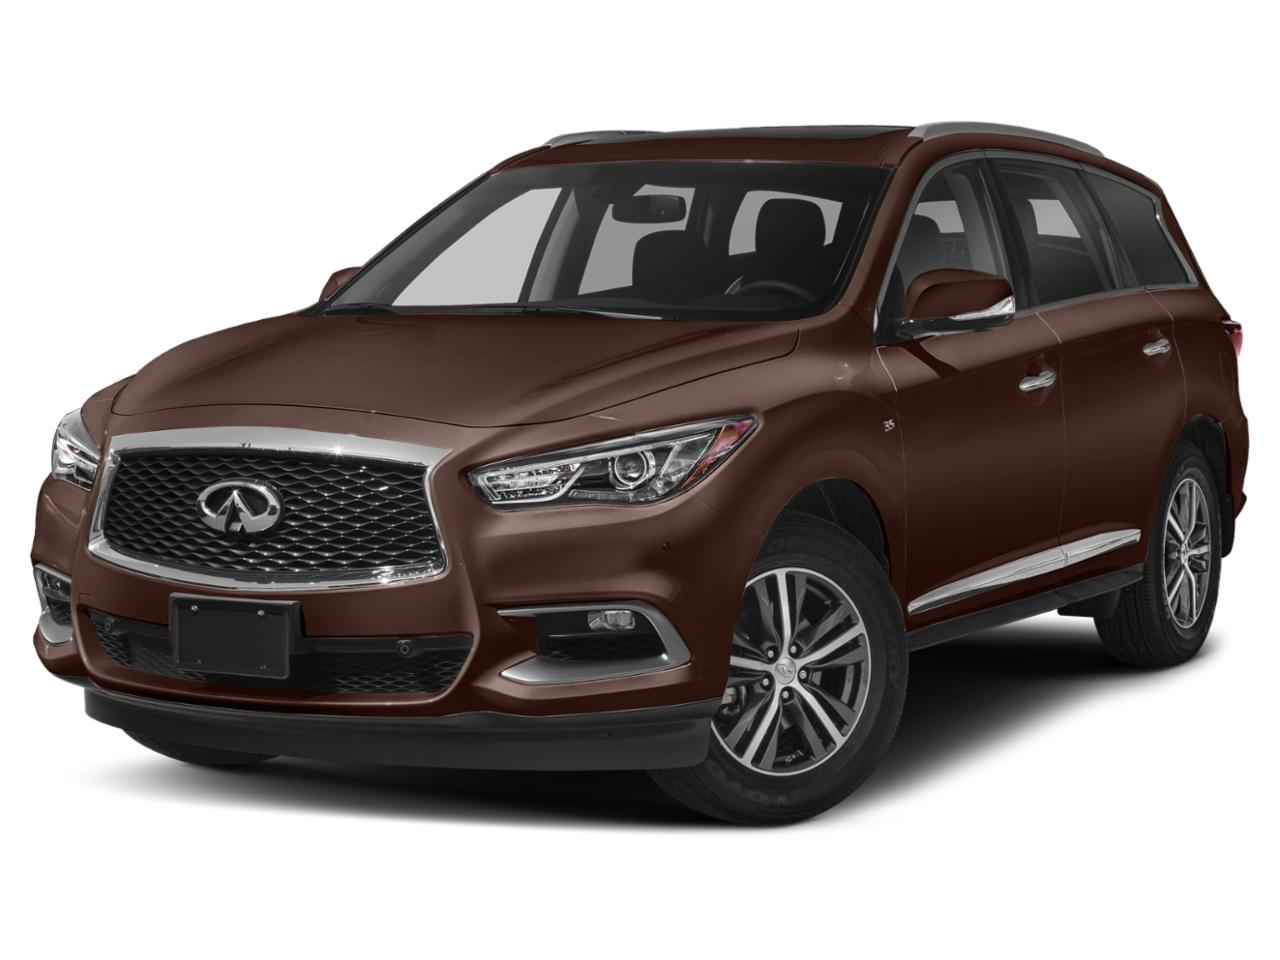 2020 INFINITI QX60 Vehicle Photo in Jenkintown, PA 19046